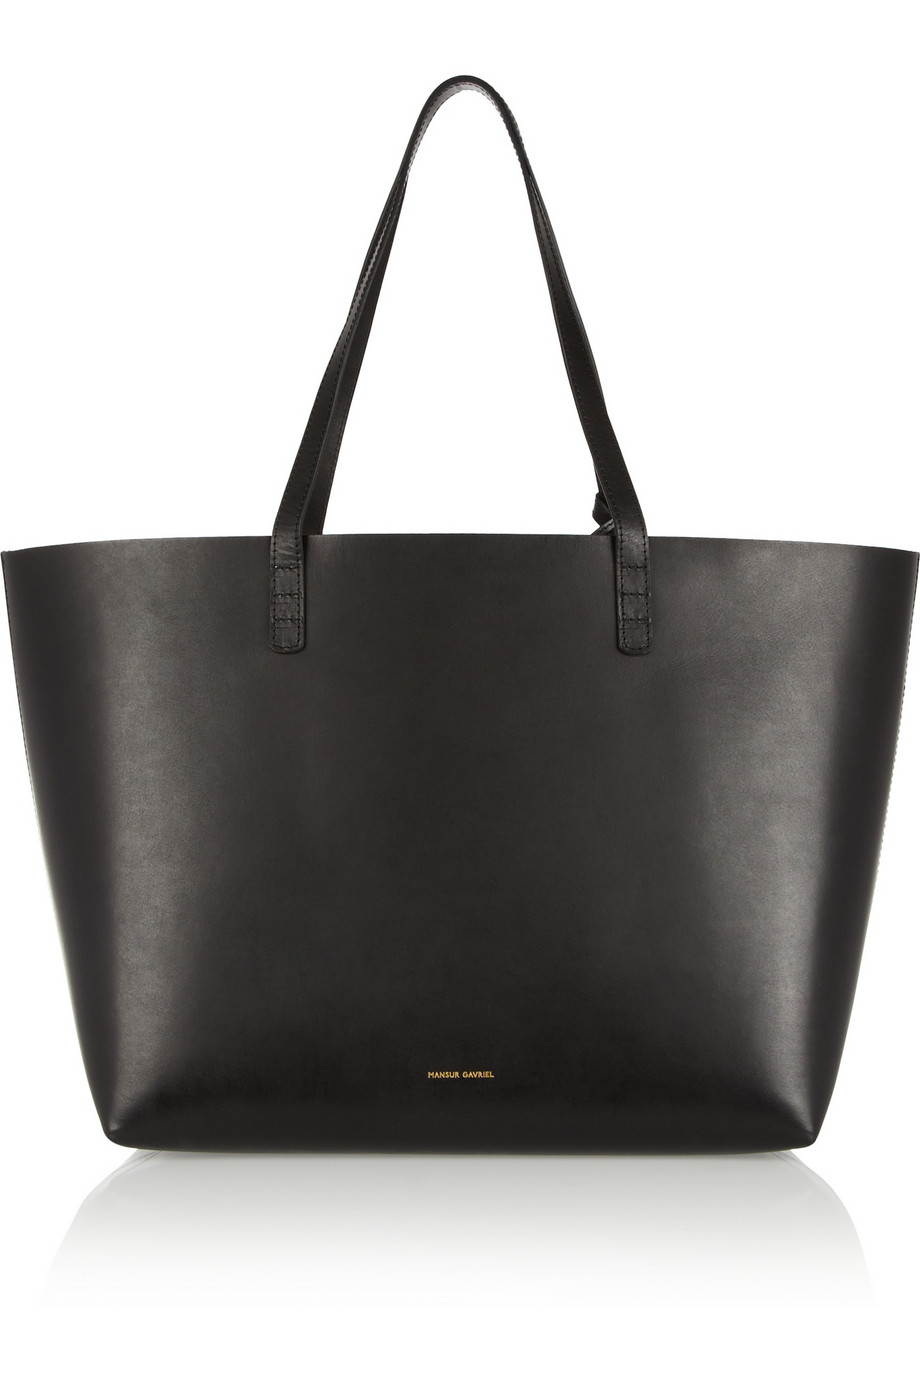 Saint Laurent - Large Leather Shopper Tote perscrib-serp.cf, offering the modern energy, style and personalized service of Saks Fifth Avenue stores, in an enhanced, easy-to-navigate shopping experience.